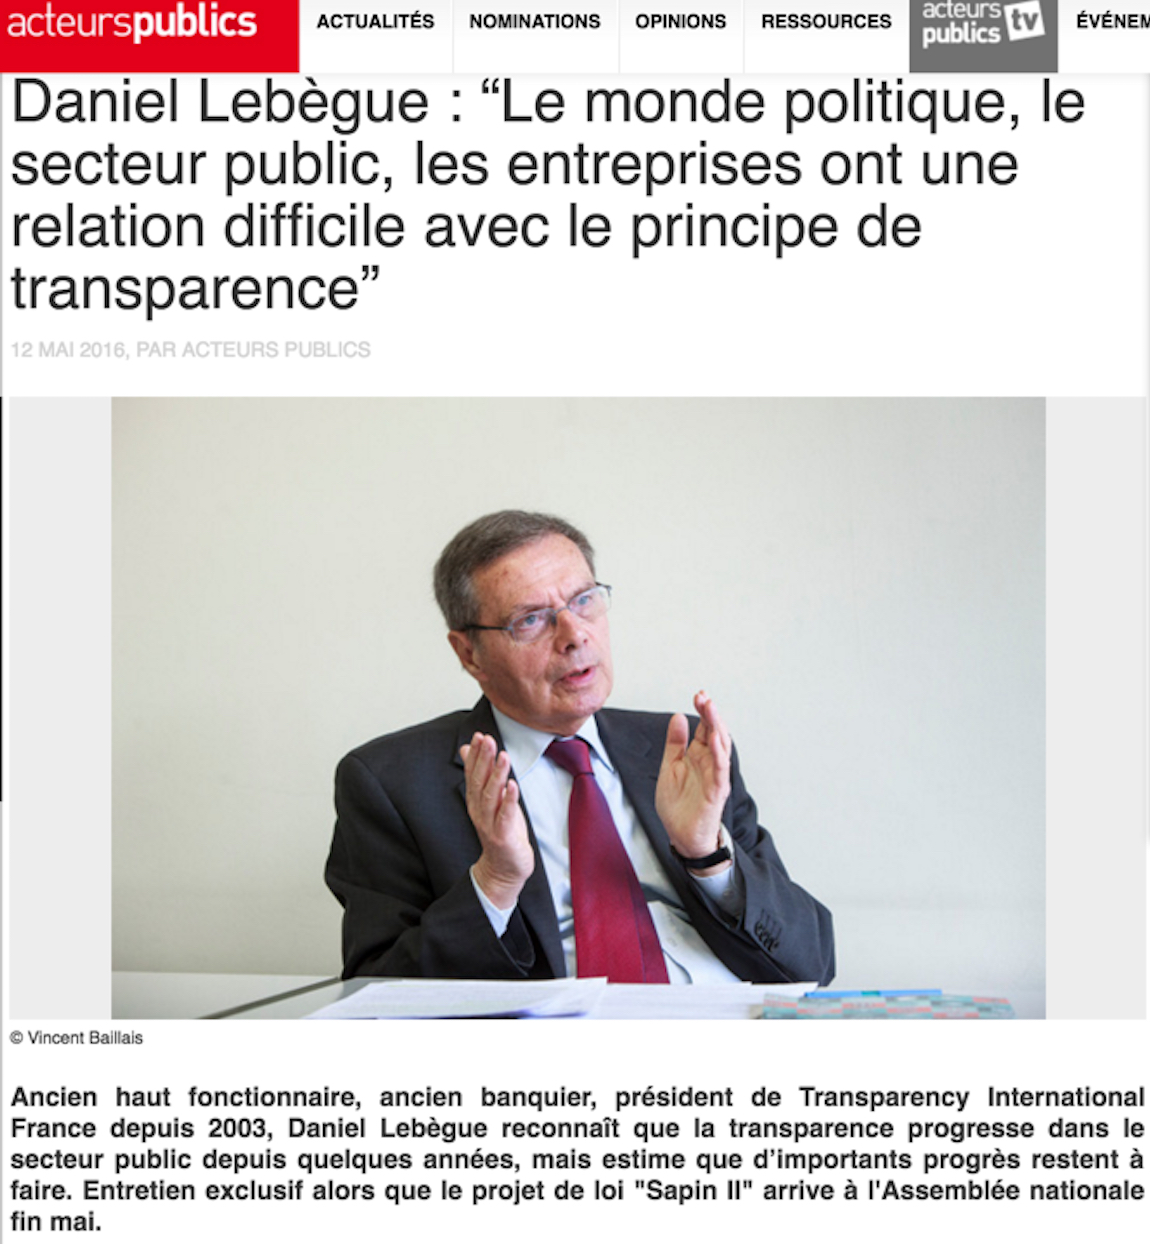 Daniel Lebègue Transparency International